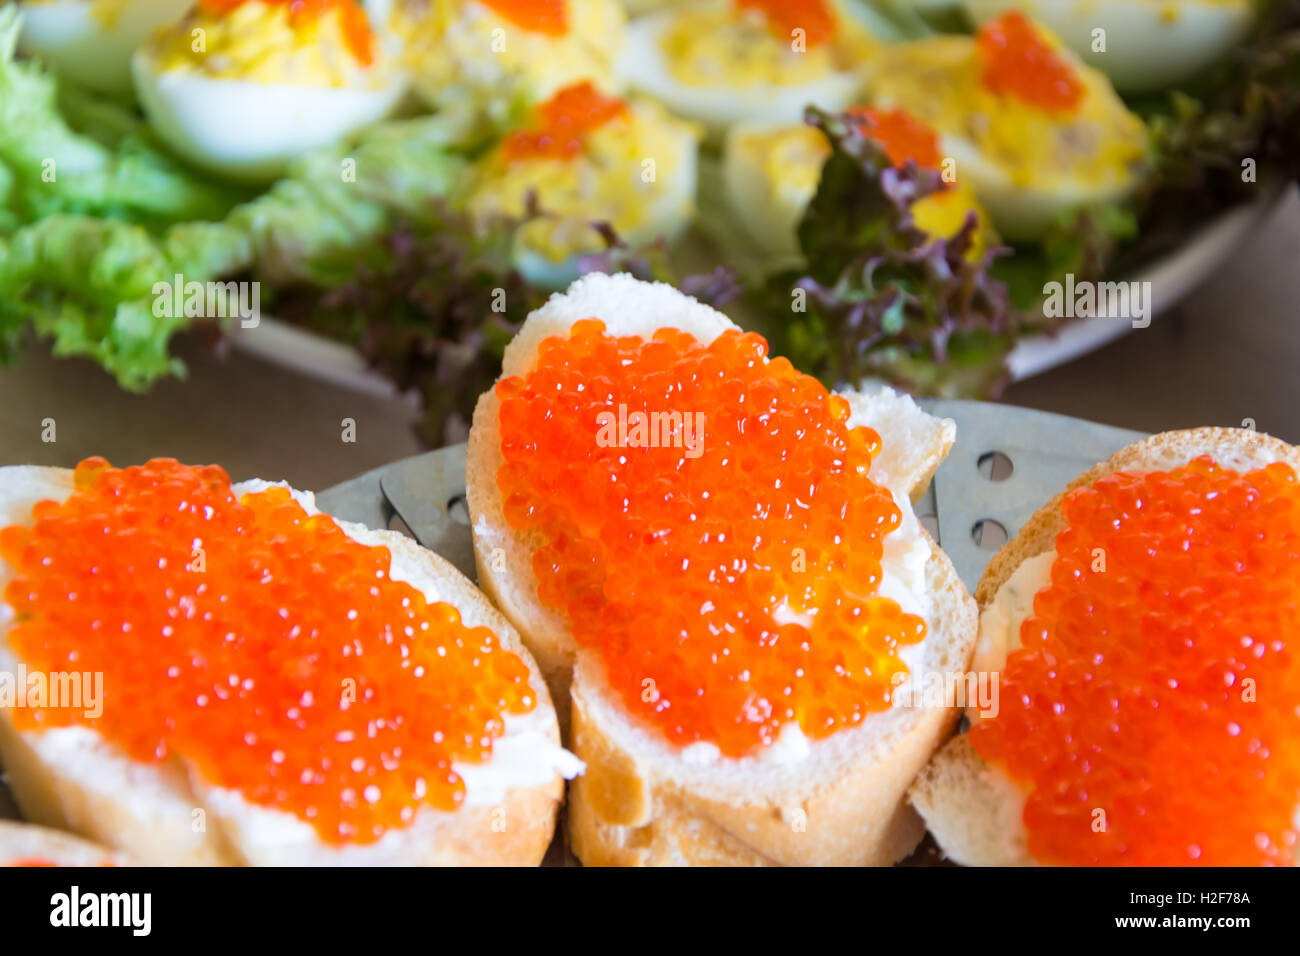 Sandwiches with red caviar on a celebratory table - Stock Image